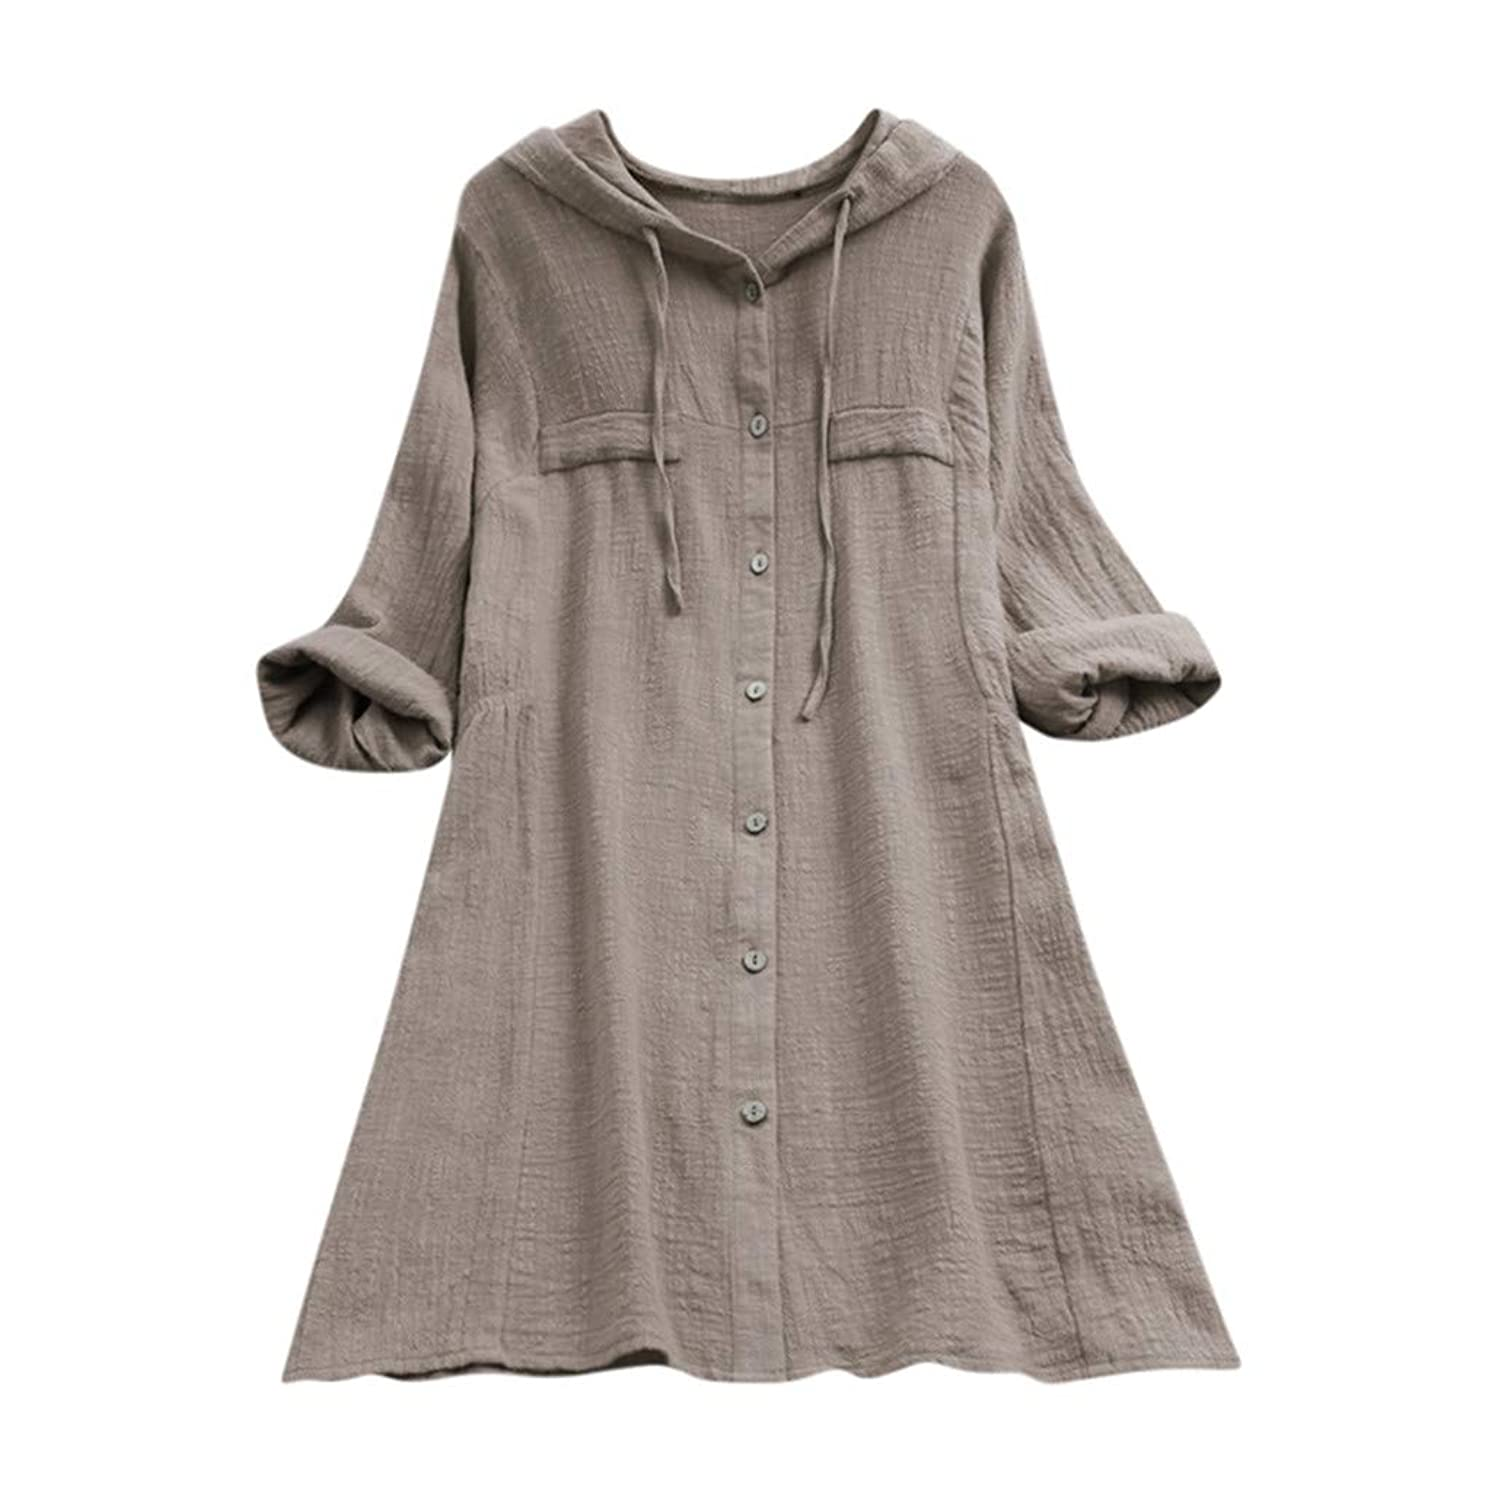 Euone Dress, Womens Casual Button Plus Size Cotton Tops Tee Shirt Hooded Pocket Loose Blouse